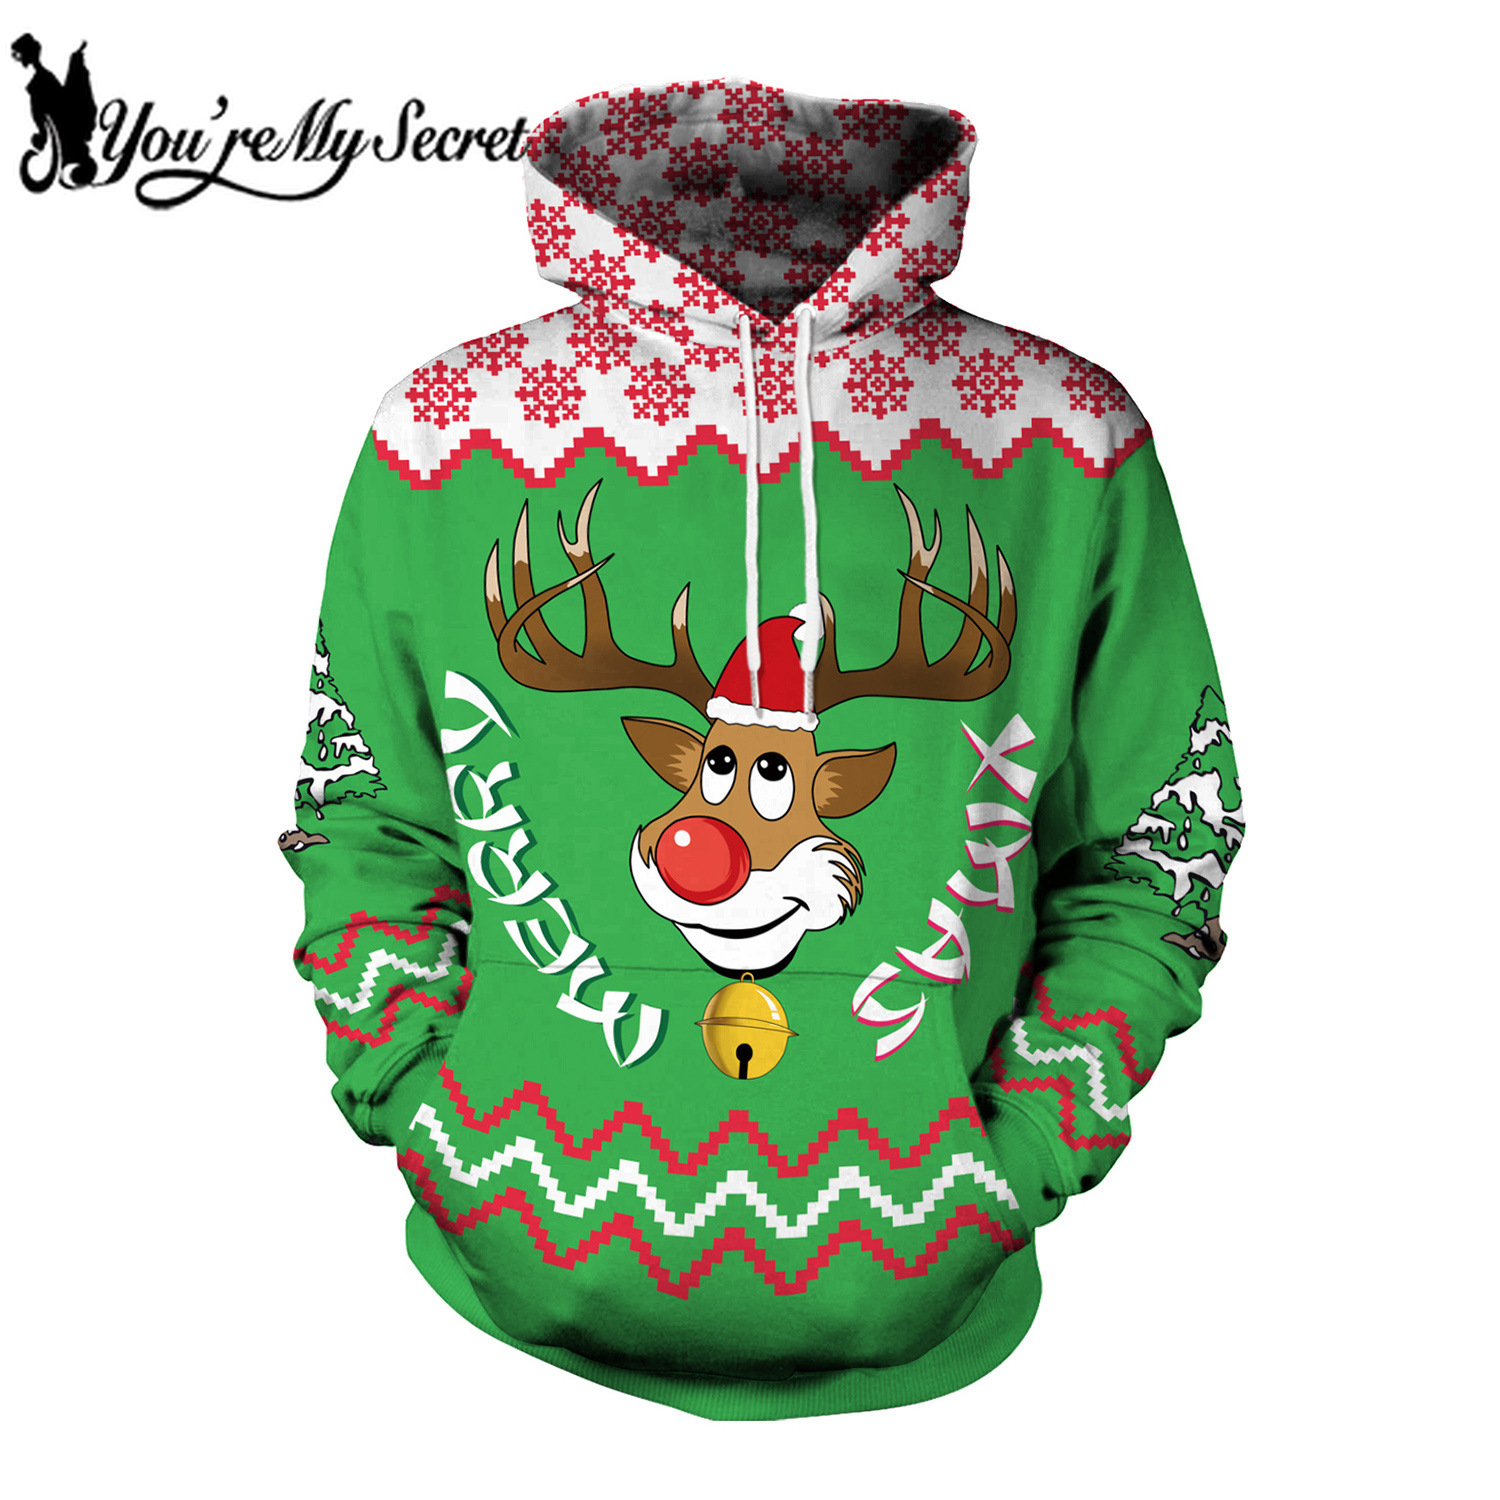 [You're My Secret] 2019 New Fashion Cute Deer Cartoon Christmas Festival Long Sleeve Sweatshirt Wih Hood Women Men's Hoodie